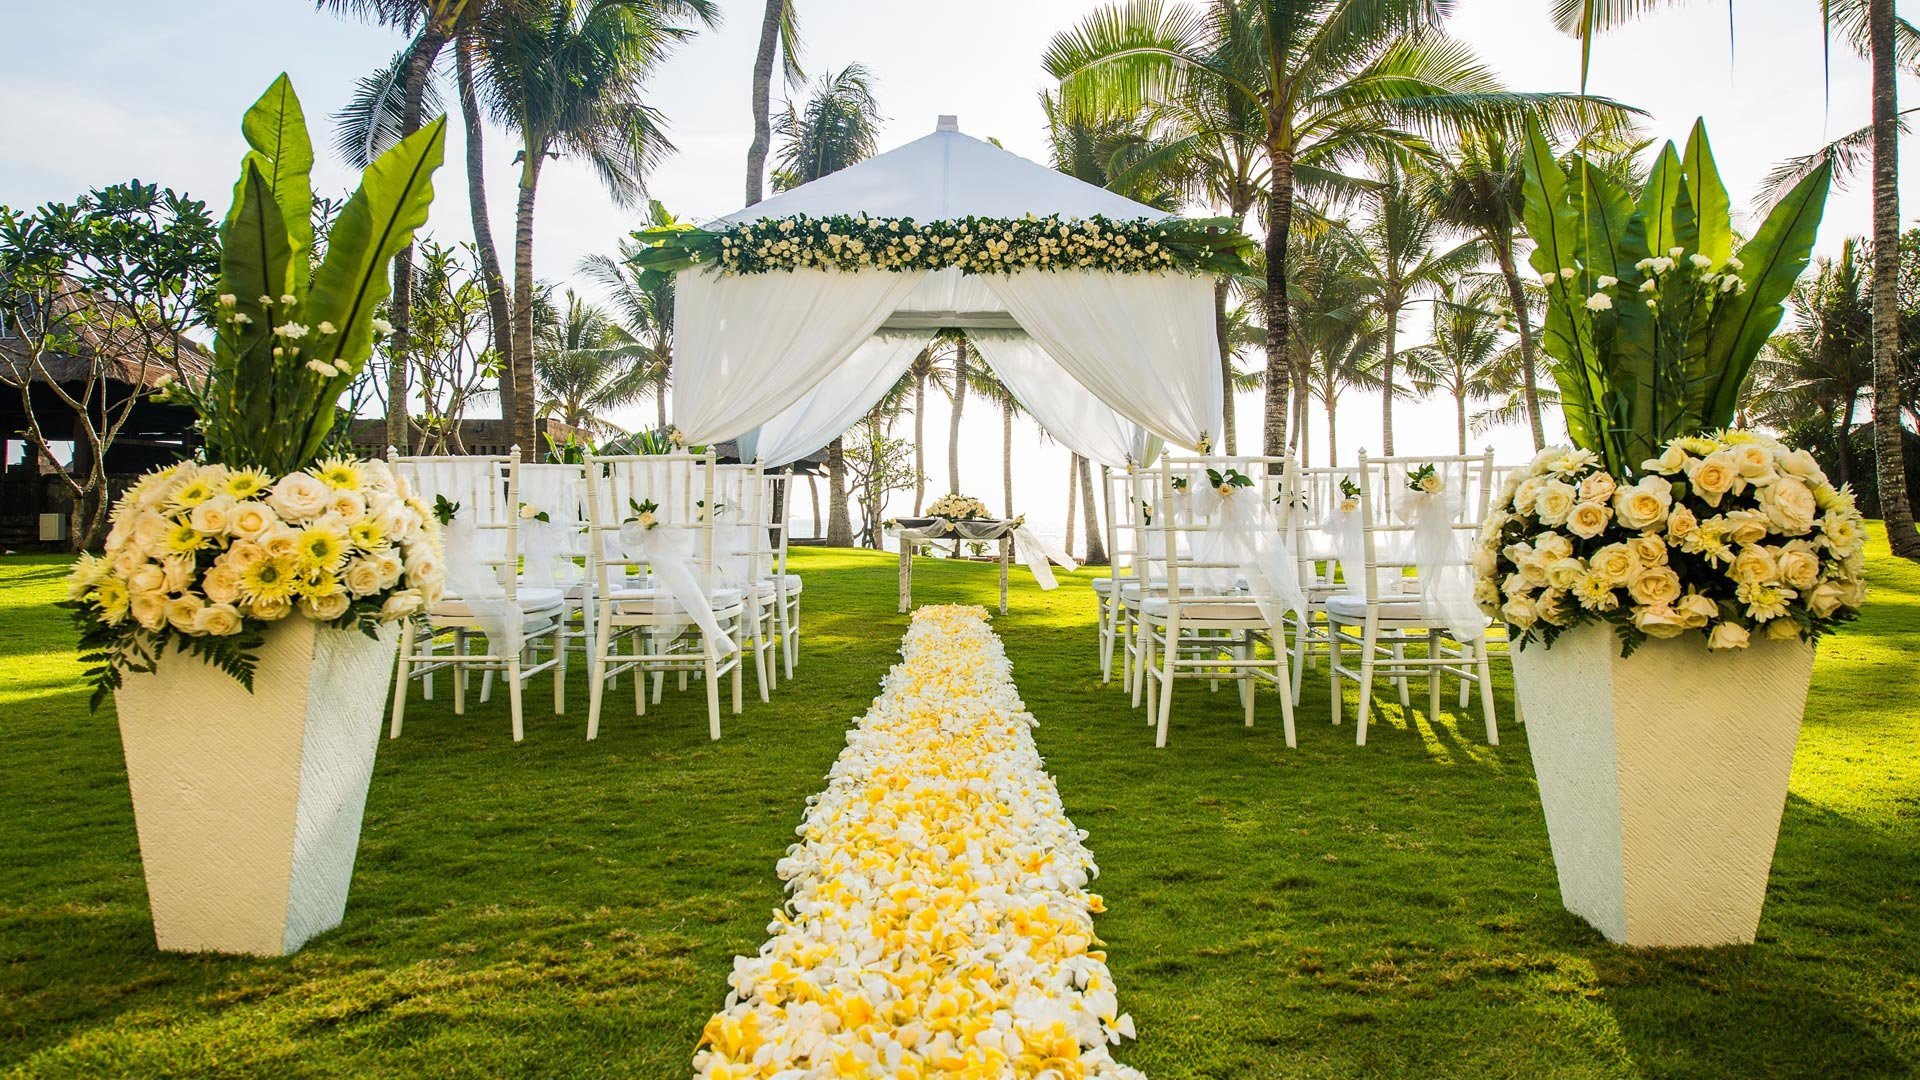 Wedding Venues in Legian Seminyak at The Legian Resort